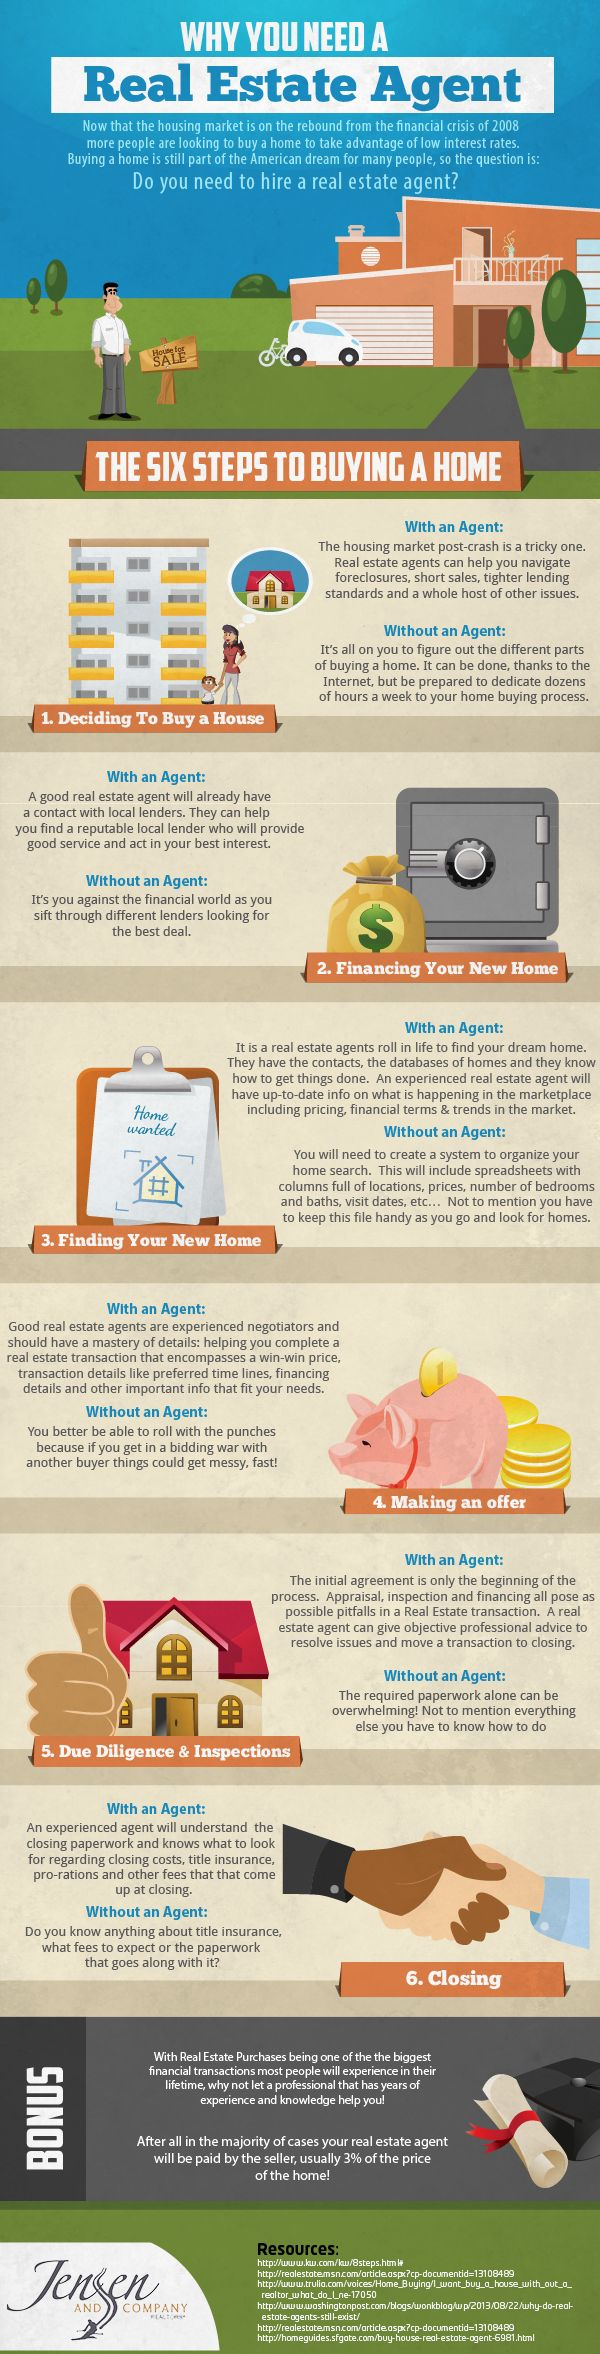 Why You Need A Real Estate Agent Infographic